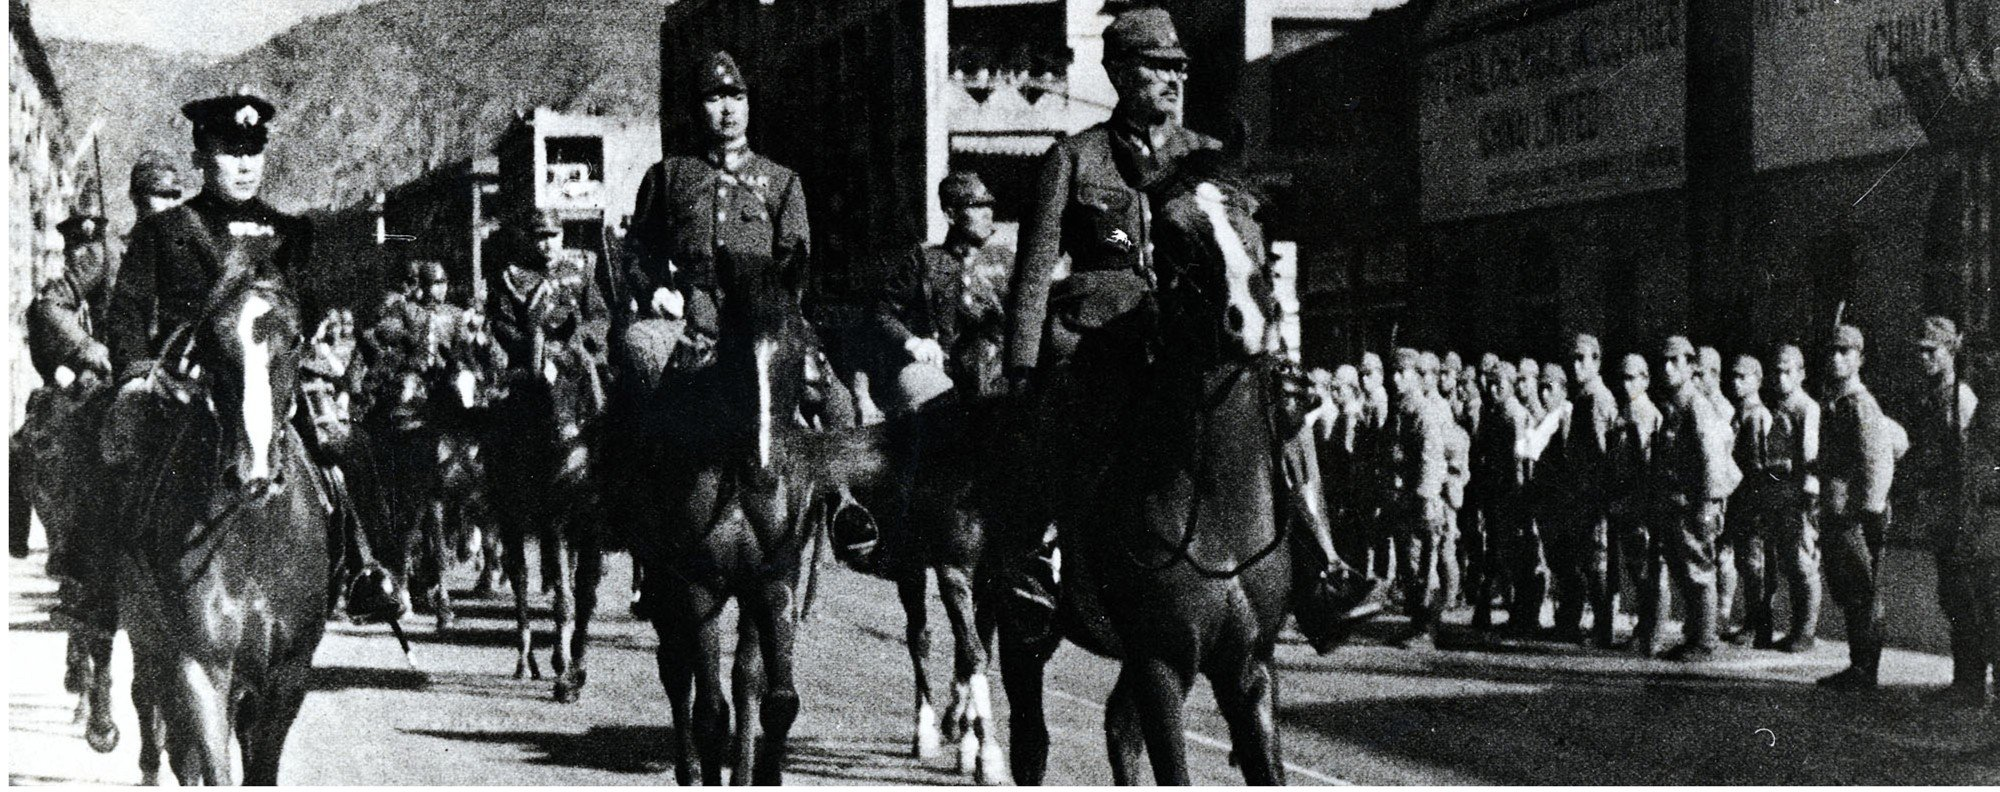 Japanese General Takashi Sakai (right) rides into Hong Kong in 1941. Picture: Getty